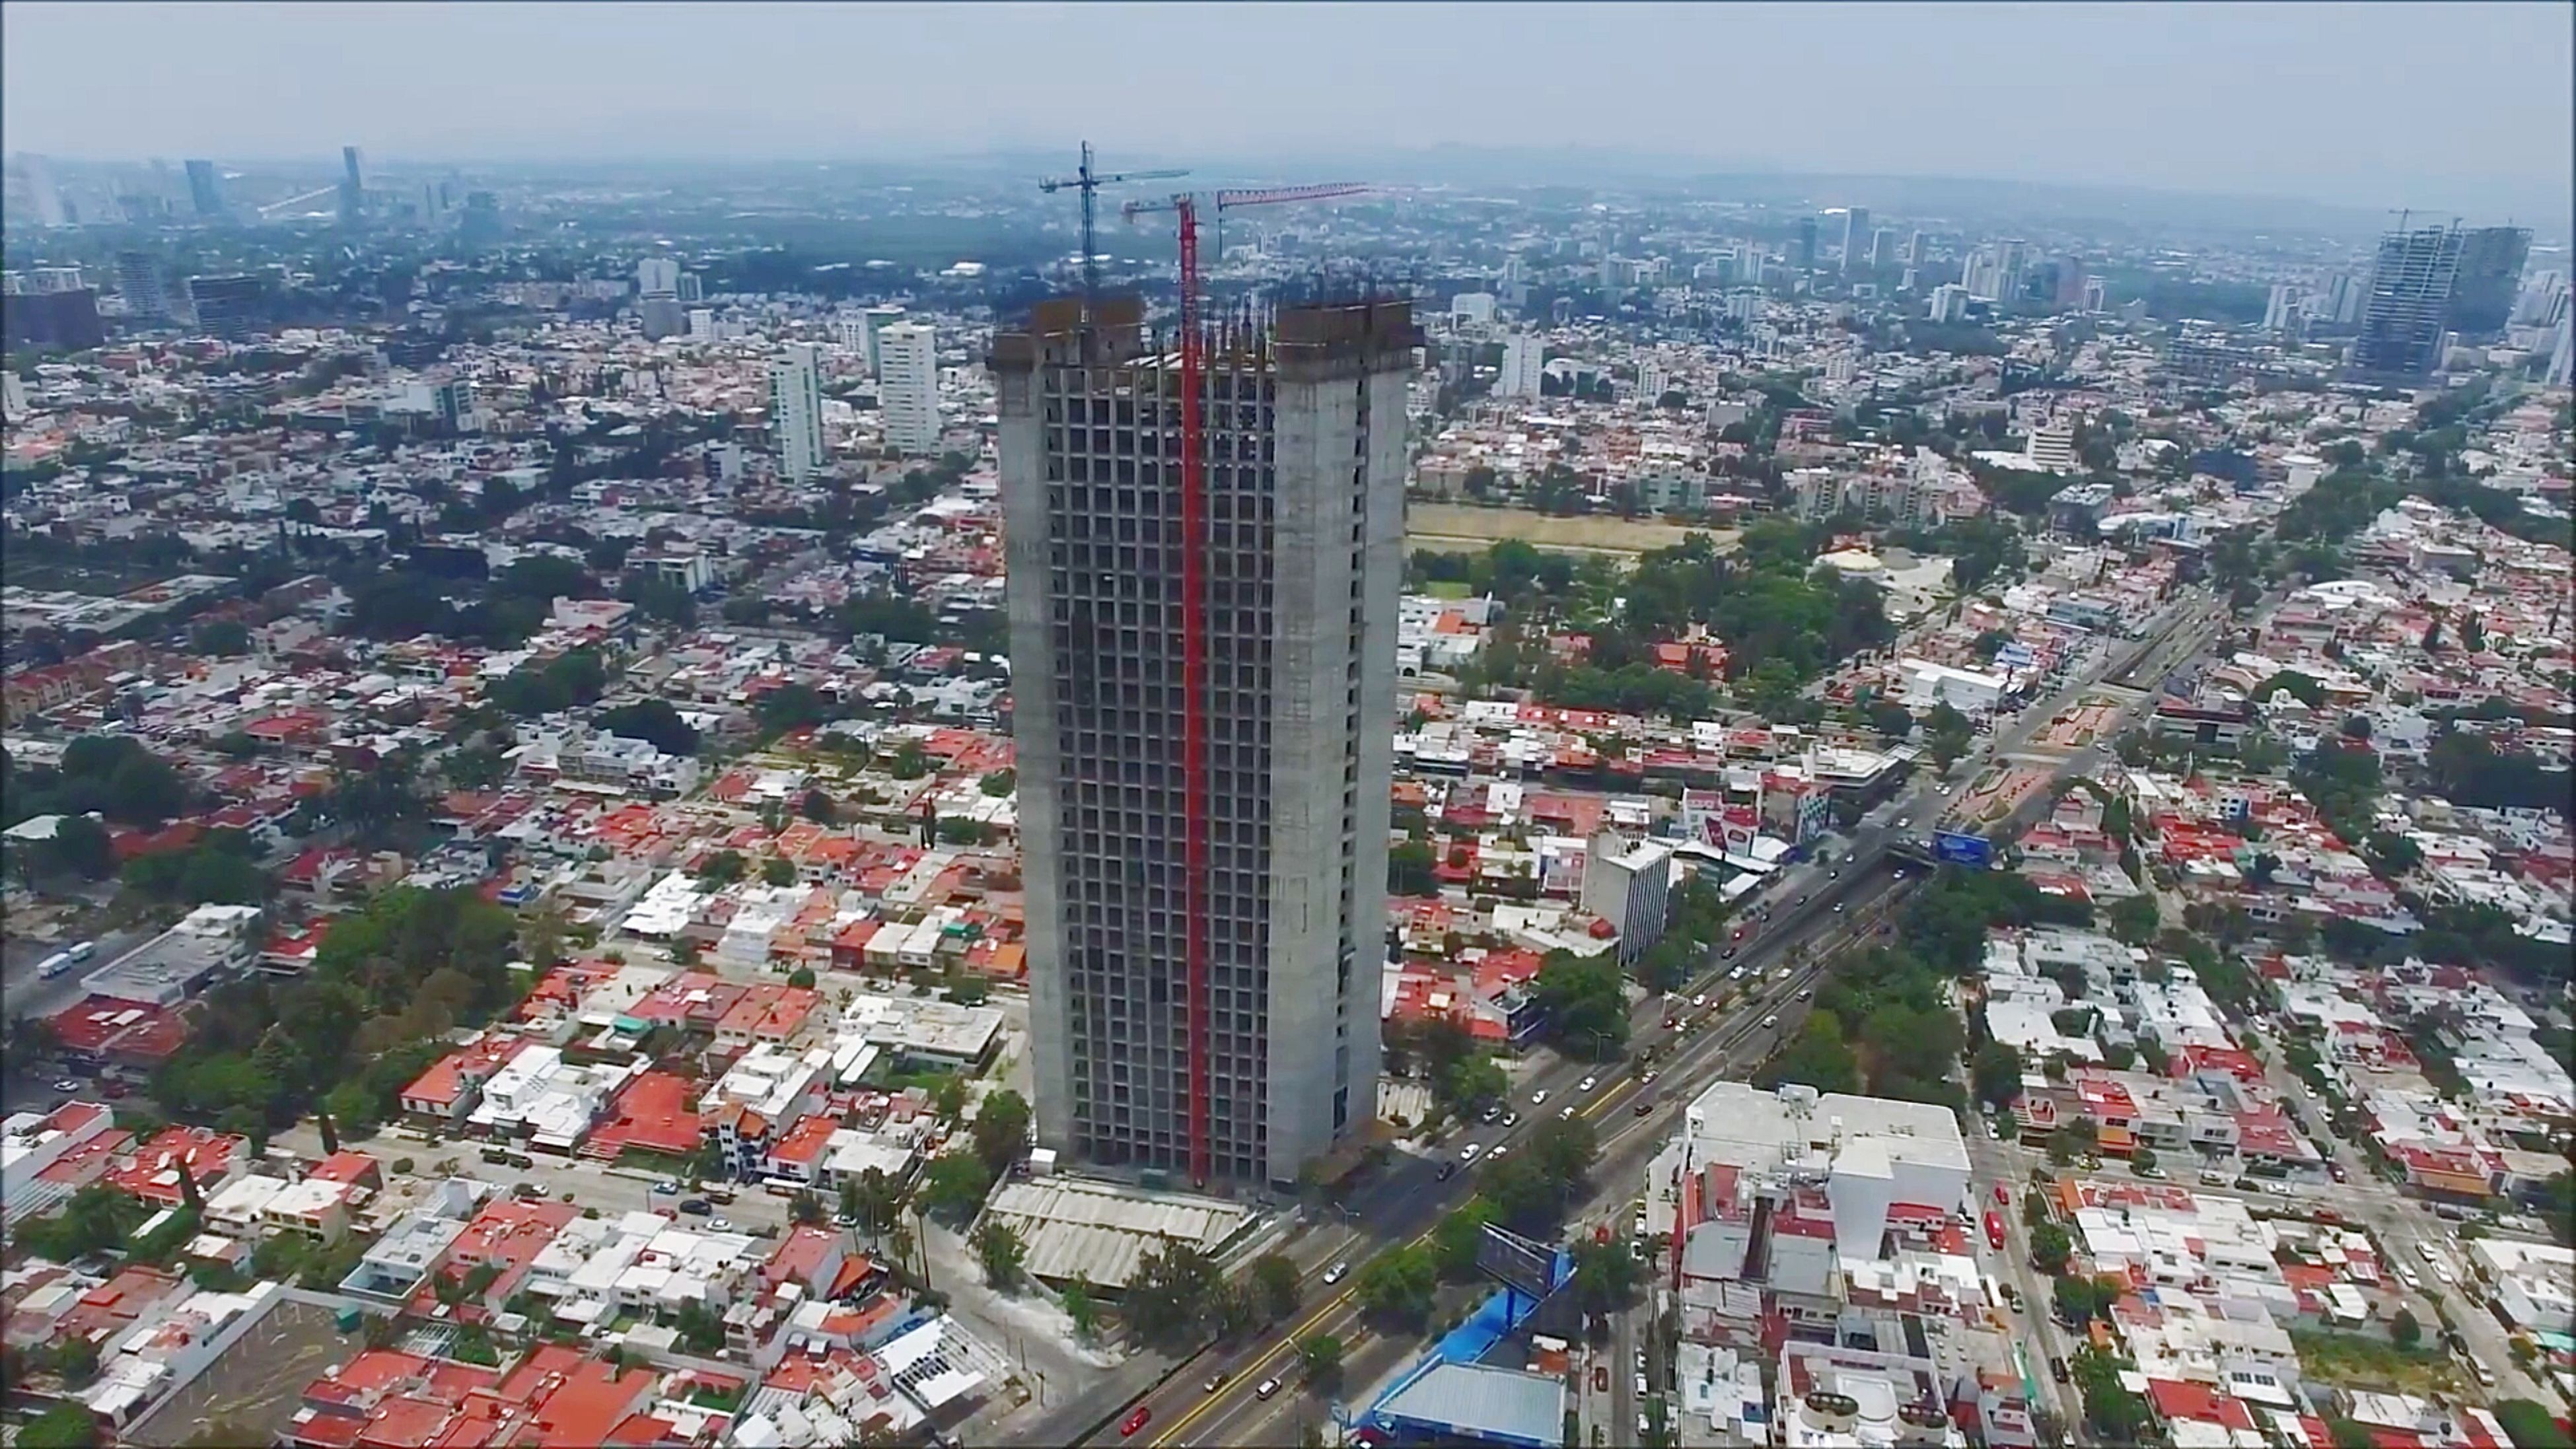 city, cityscape, architecture, building exterior, skyscraper, modern, no people, aerial view, outdoors, sky, day, tree, residential